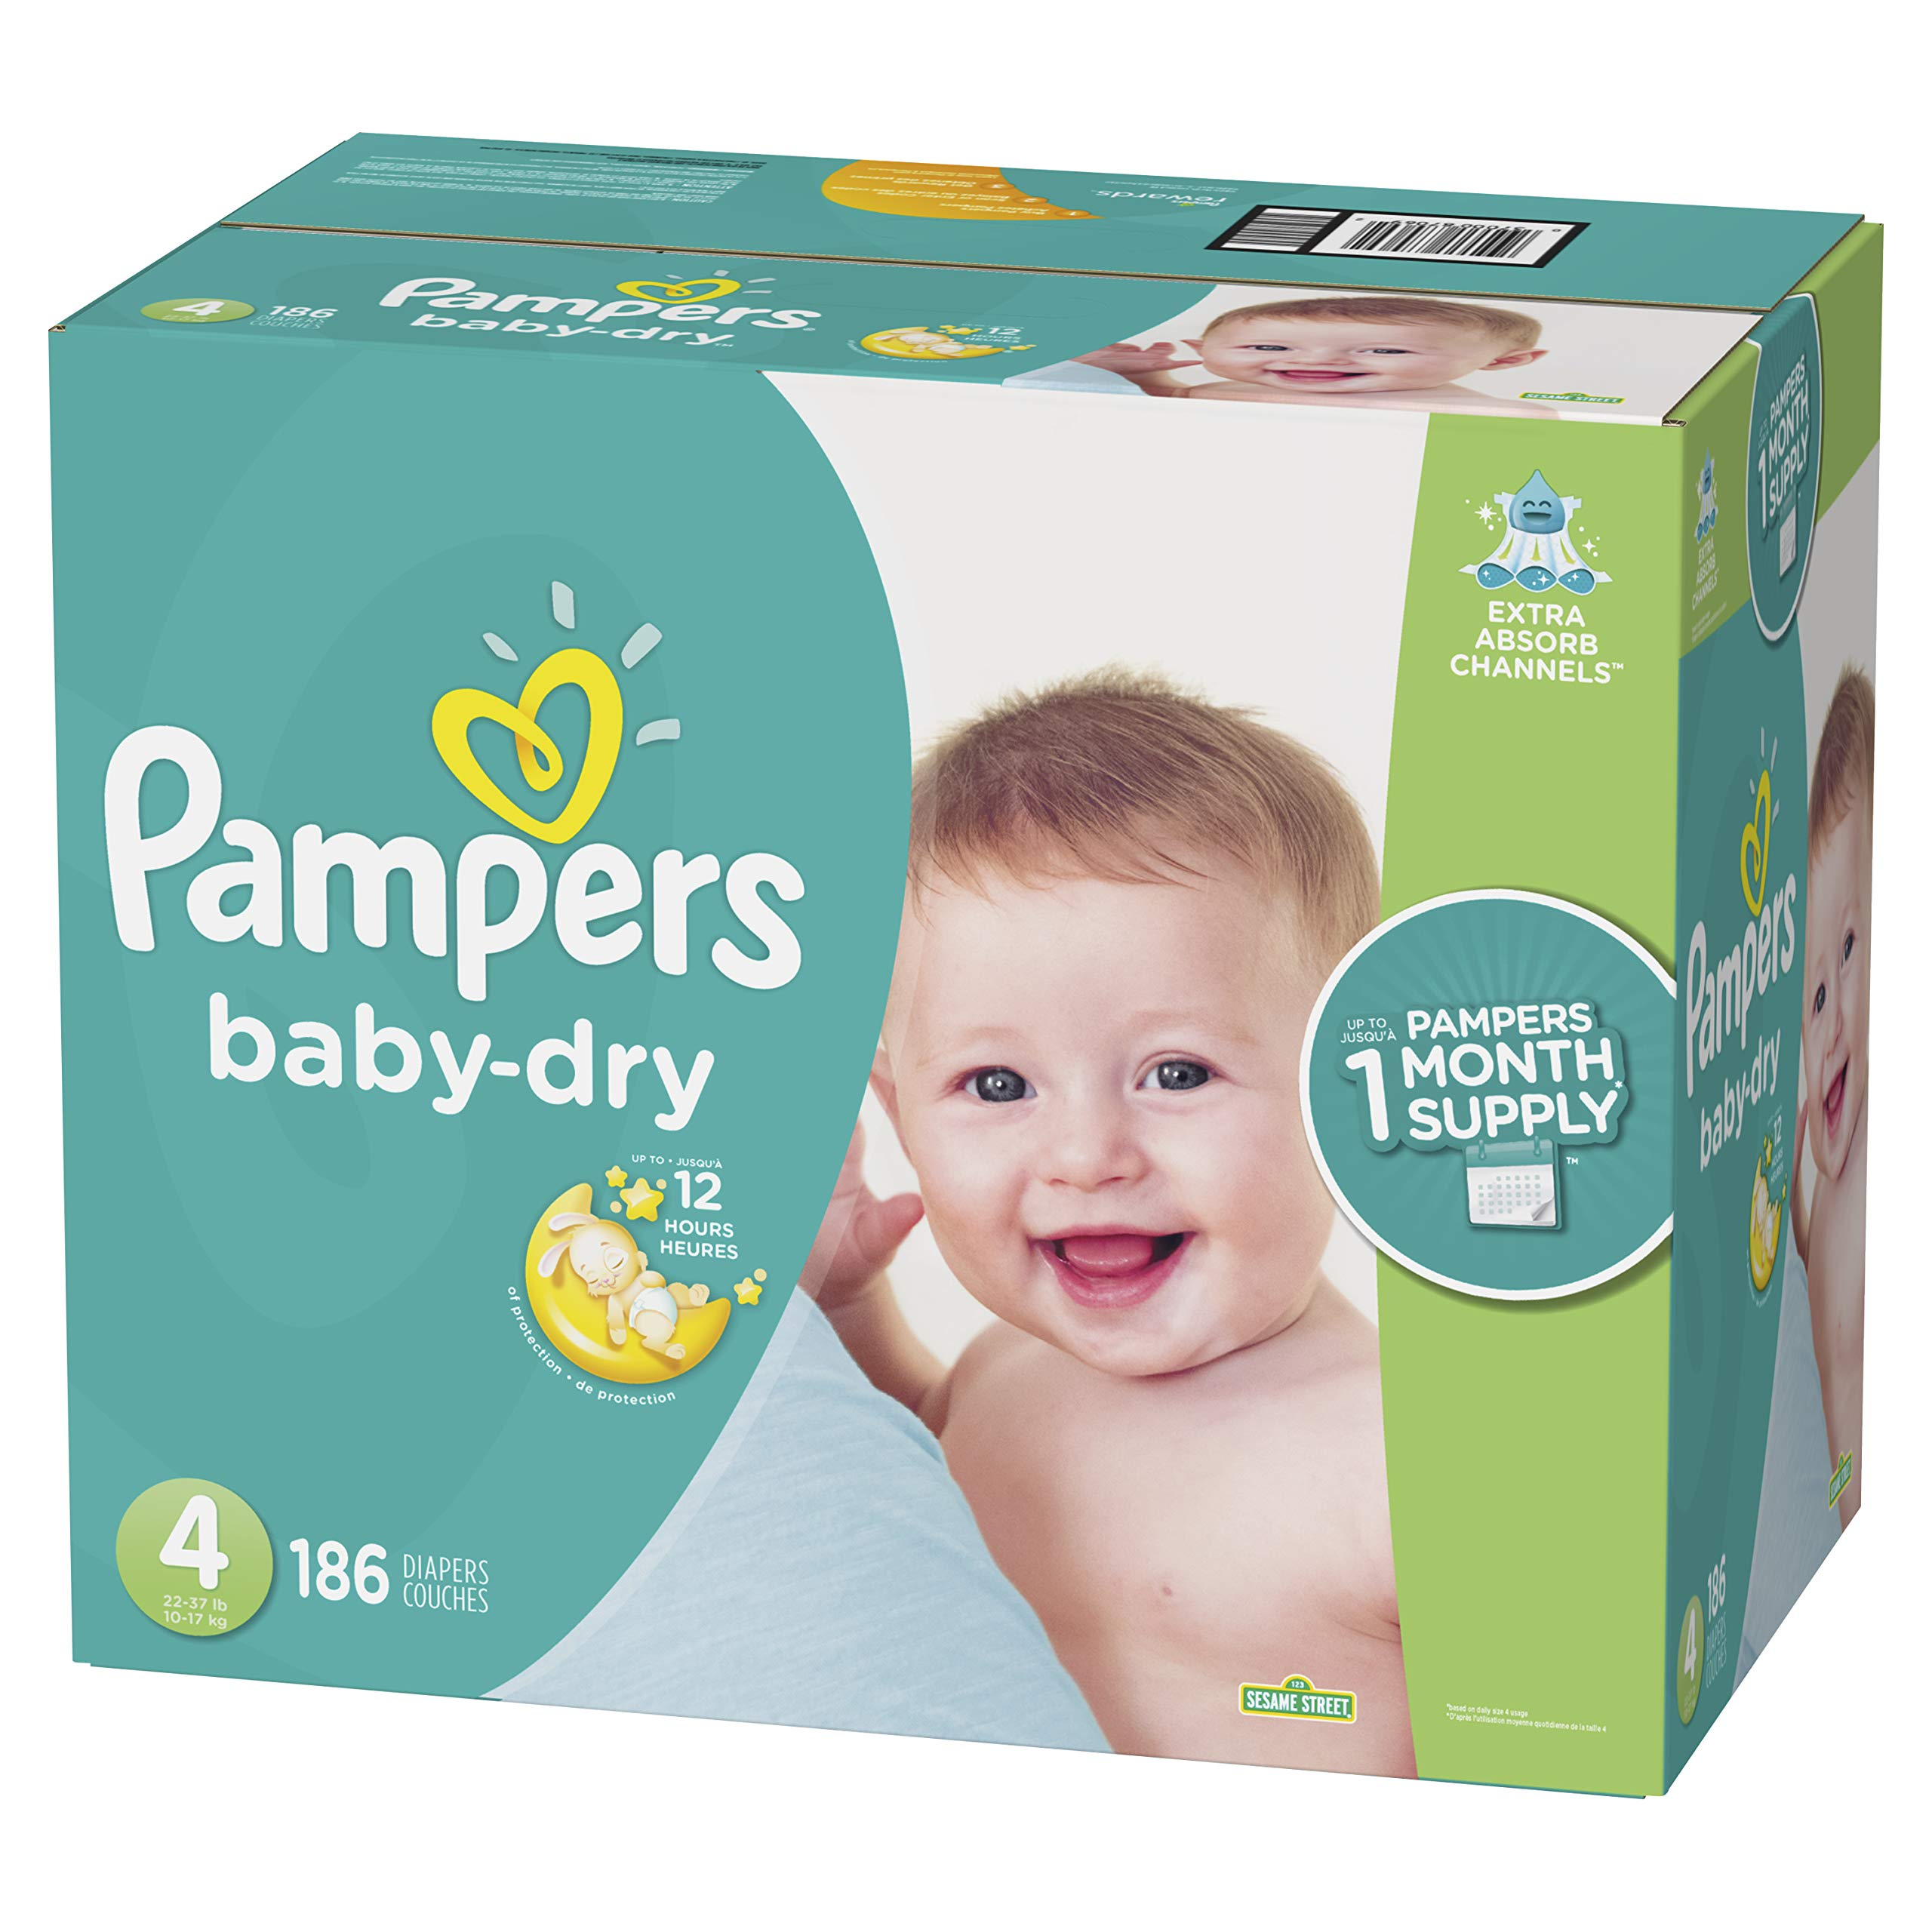 Diapers Size 4, 186 Count - Pampers Baby Dry Disposable Baby Diapers, ONE MONTH SUPPLY by Pampers